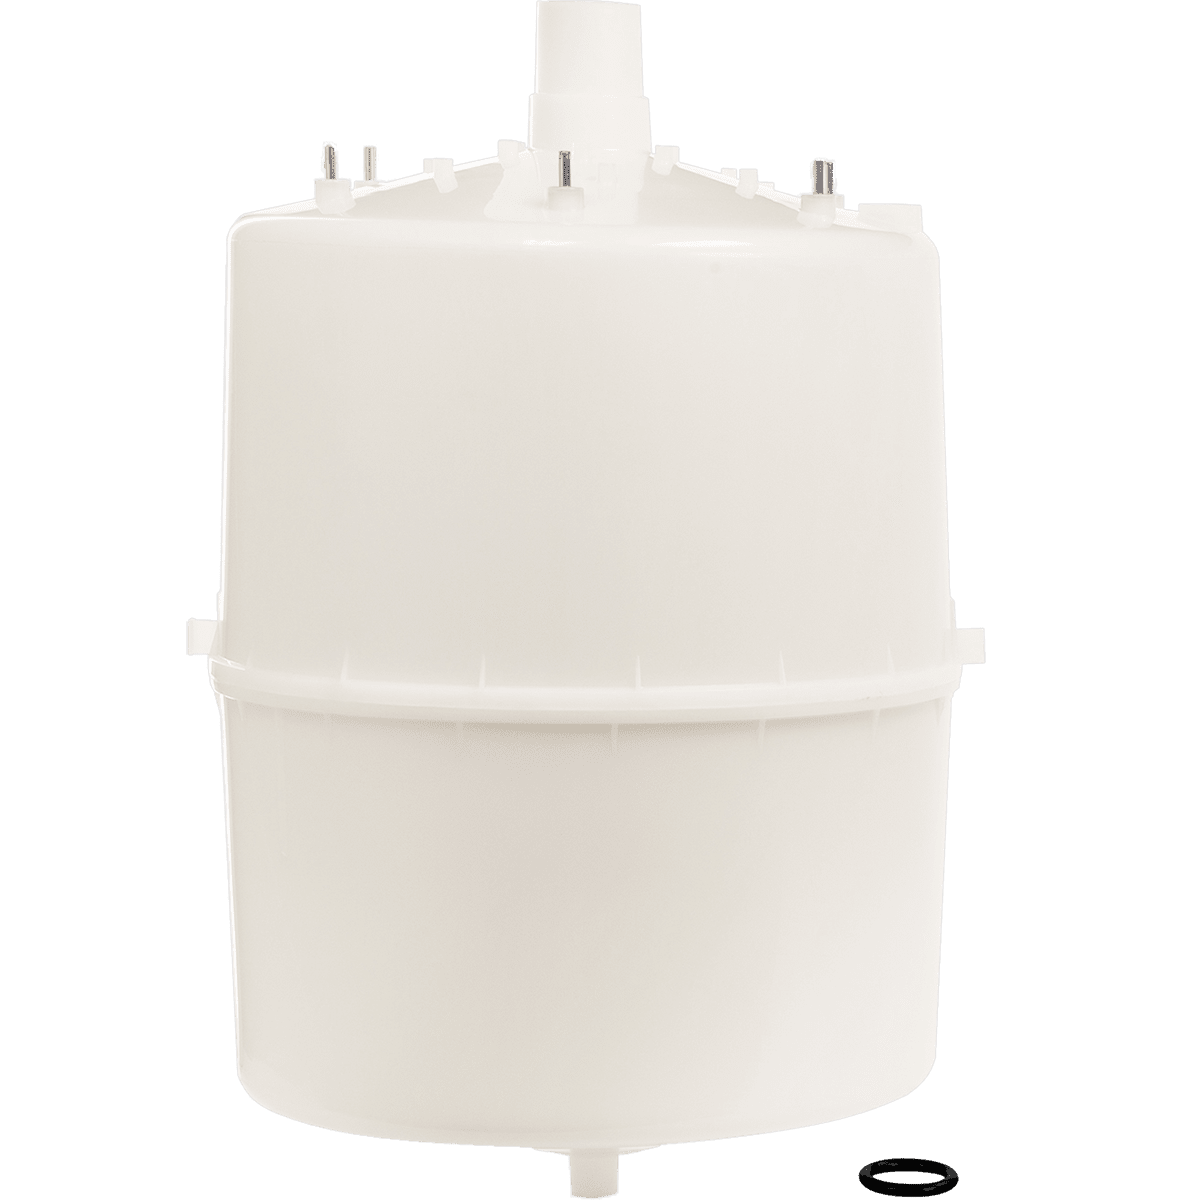 Aprilaire 605aac Steam Humidifier Cylinder (fits Nortec® 605)